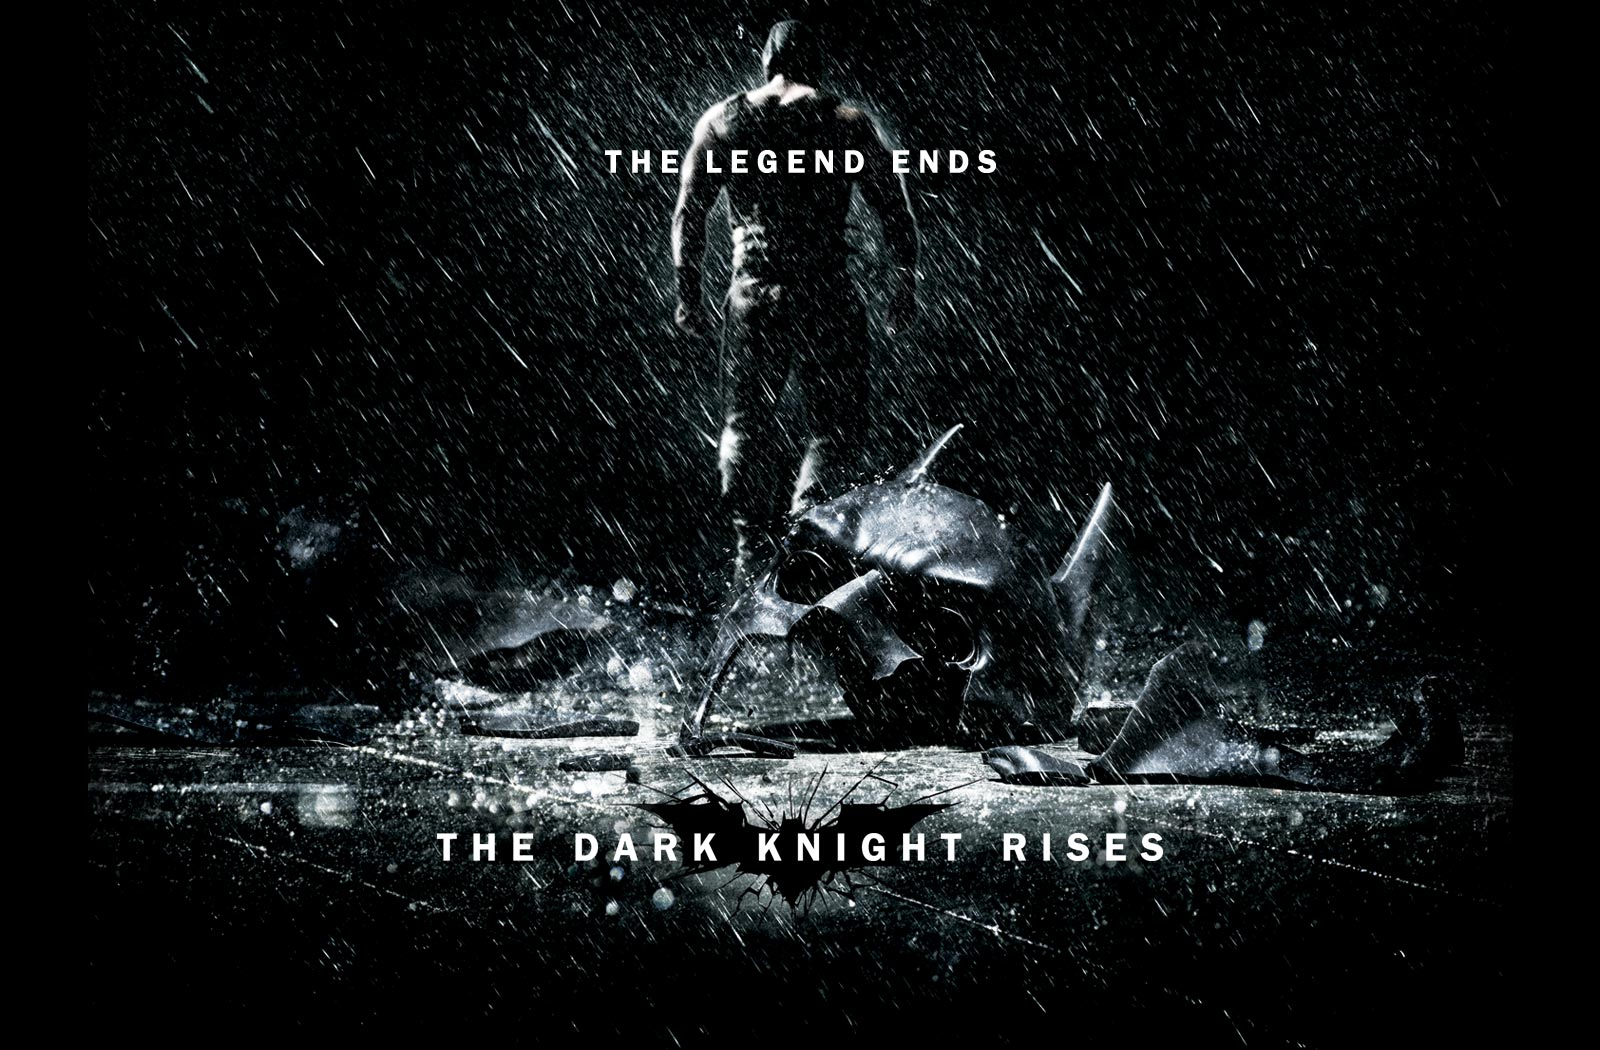 The Dark Knight Rises The Legend Ends Wallpaper